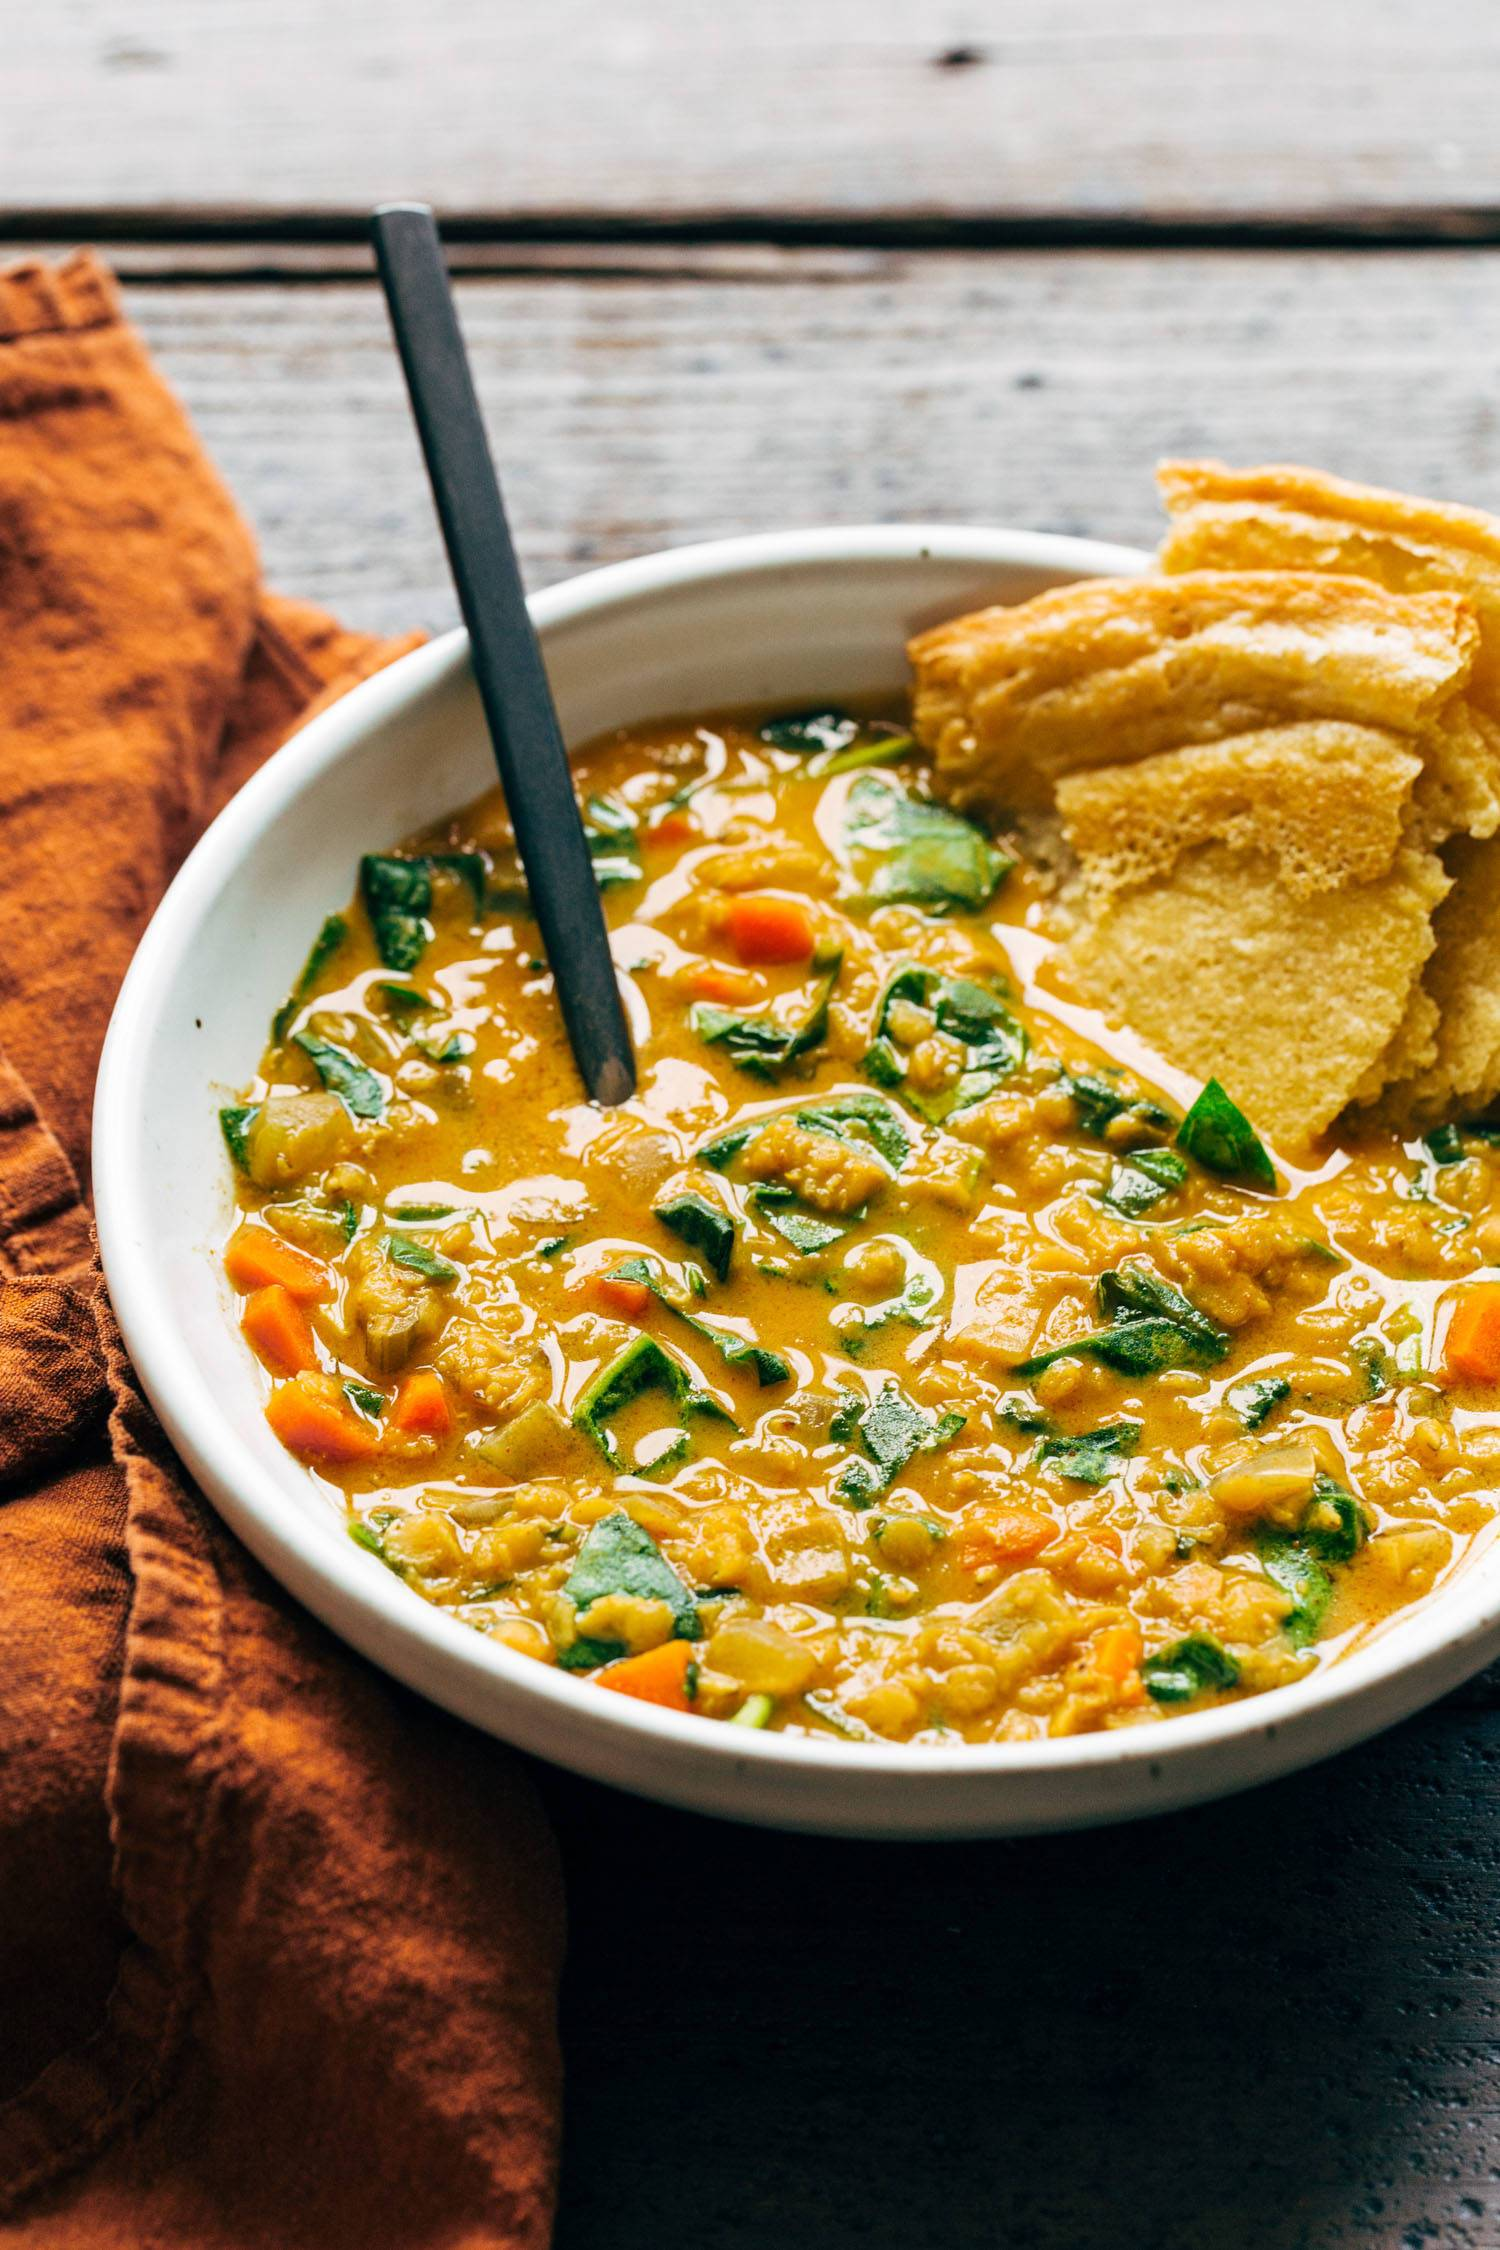 Red lentil soup with spinach and socca in a bowl with a spoon.